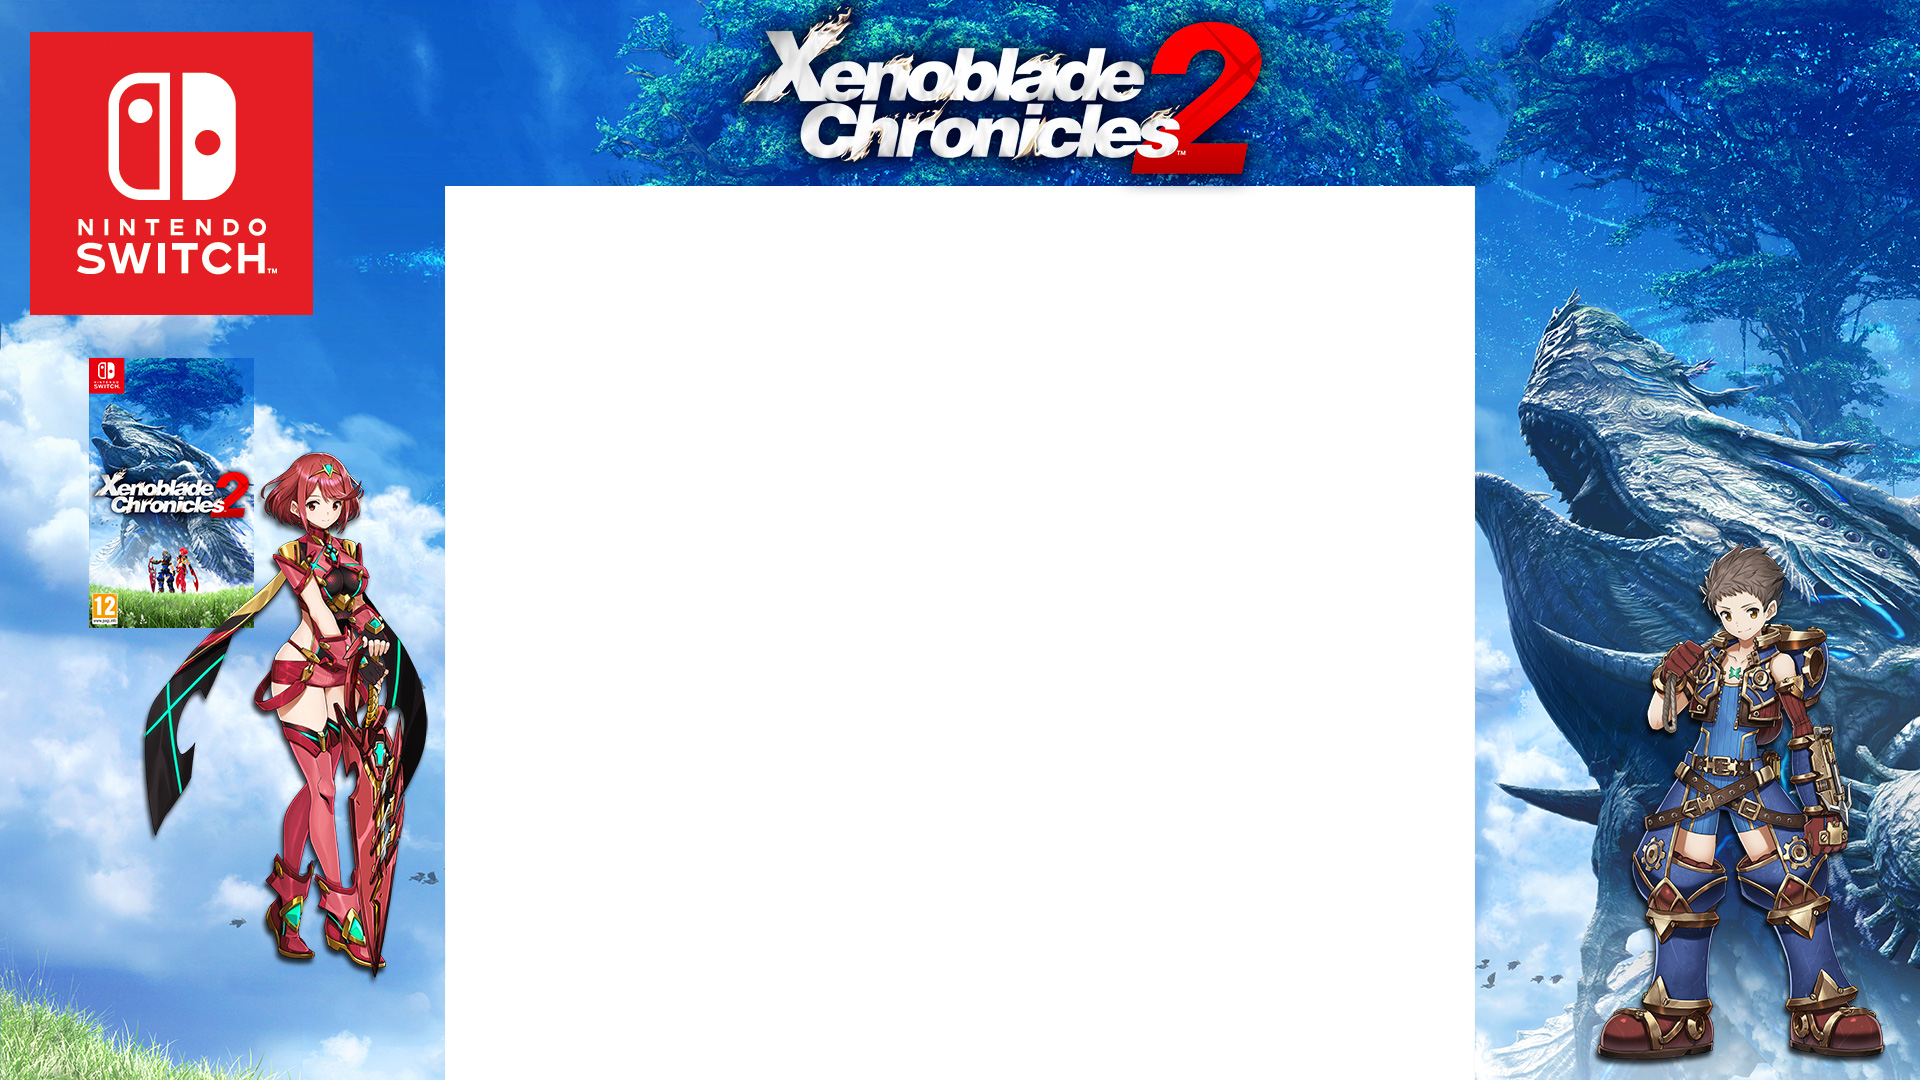 Nintendoshop_Xenoblade Chronicles 2